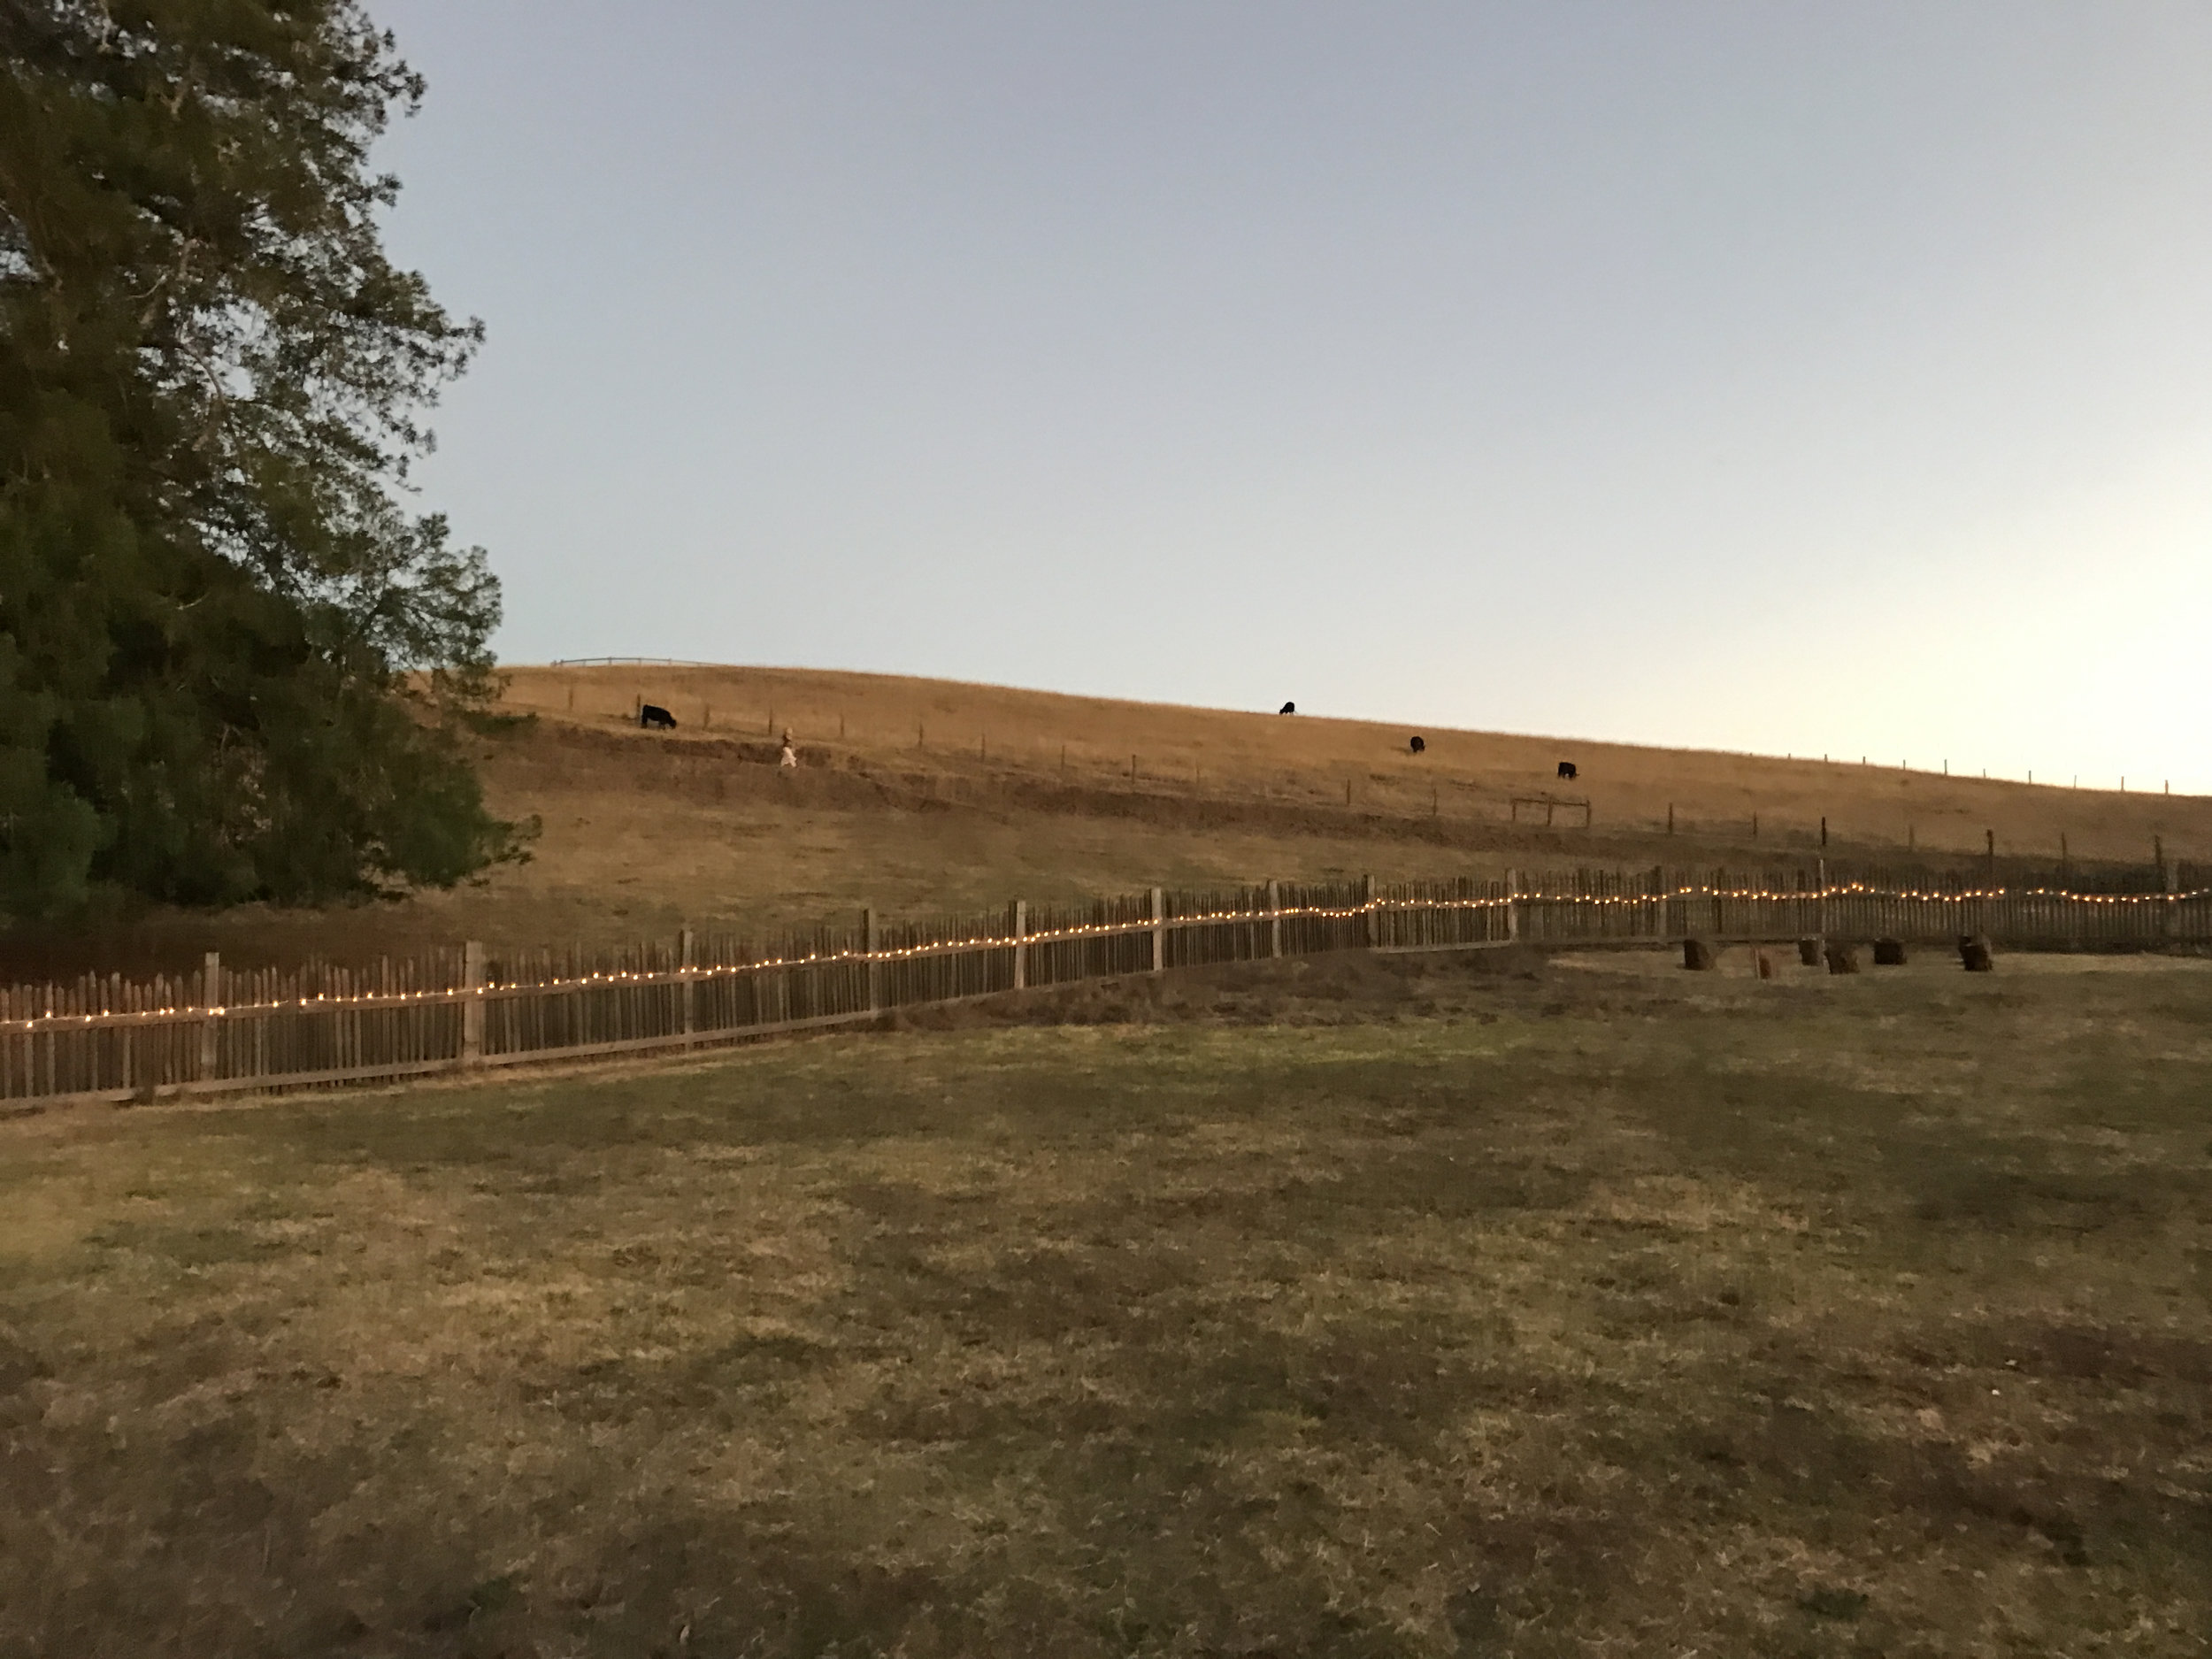 The jagged wooden fence that surrounds the ranch grounds.